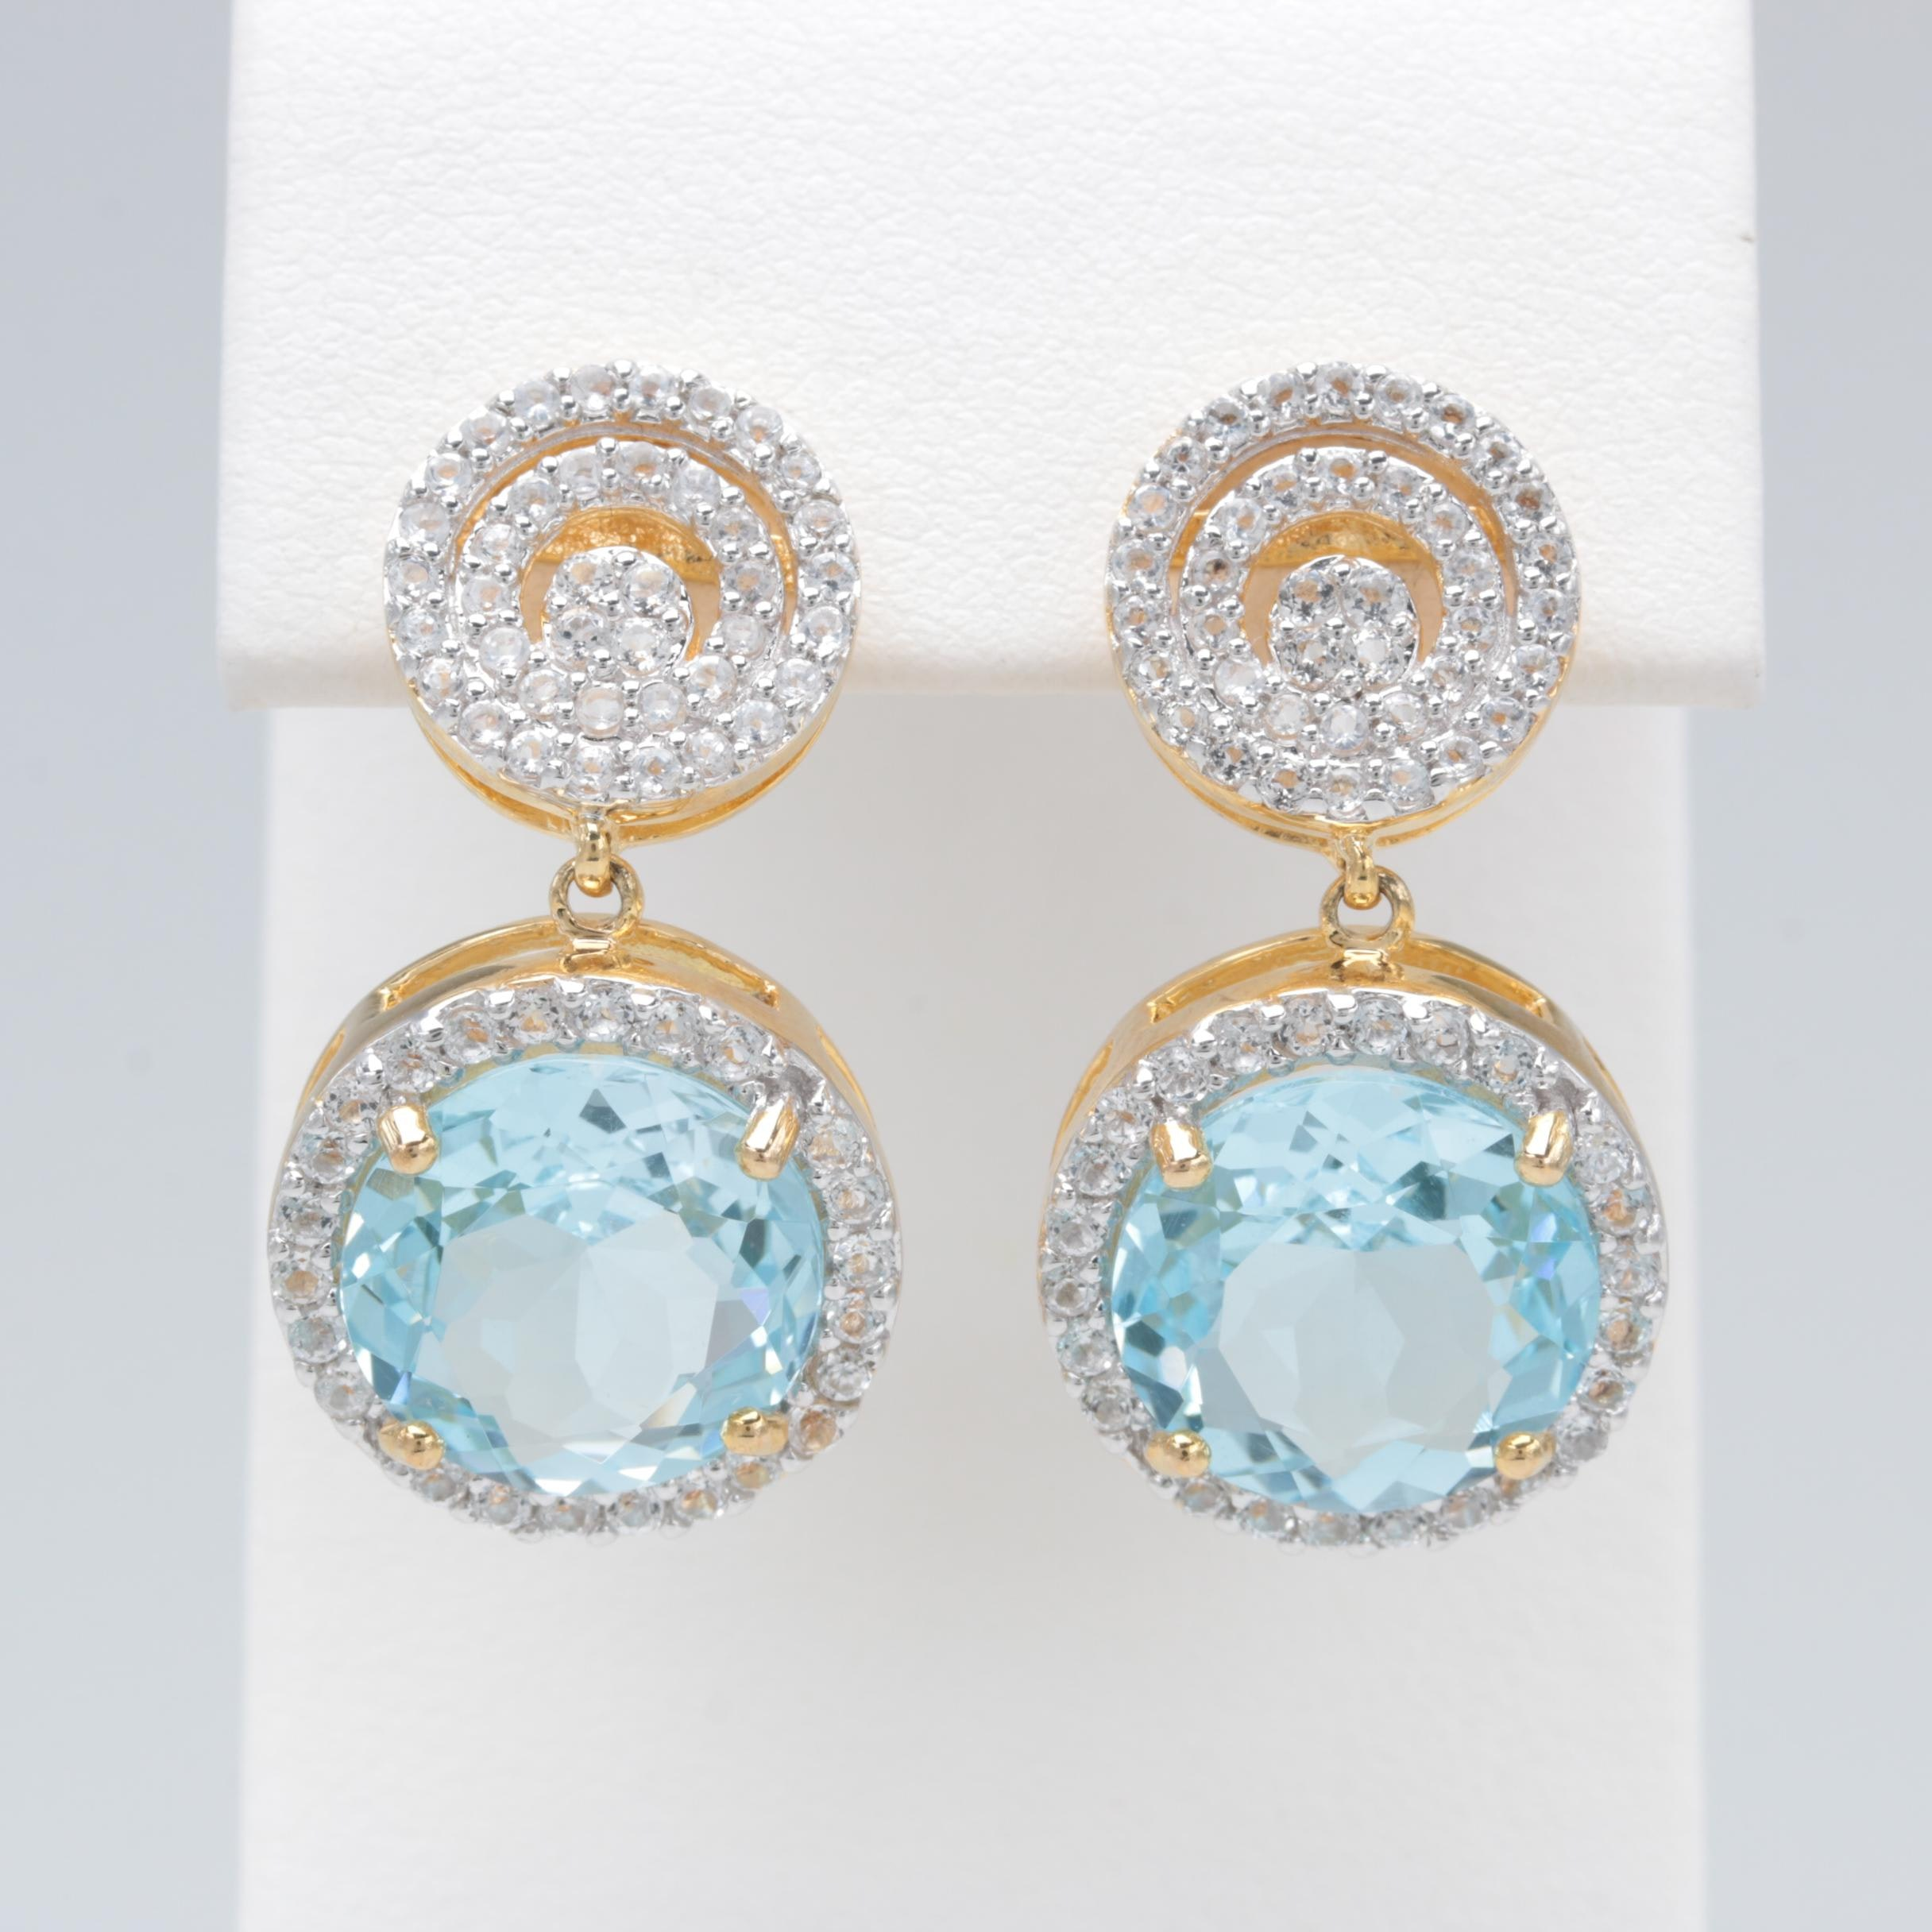 Robert Manse Gold Wash on Sterling Silver Blue and White Topaz Earrings